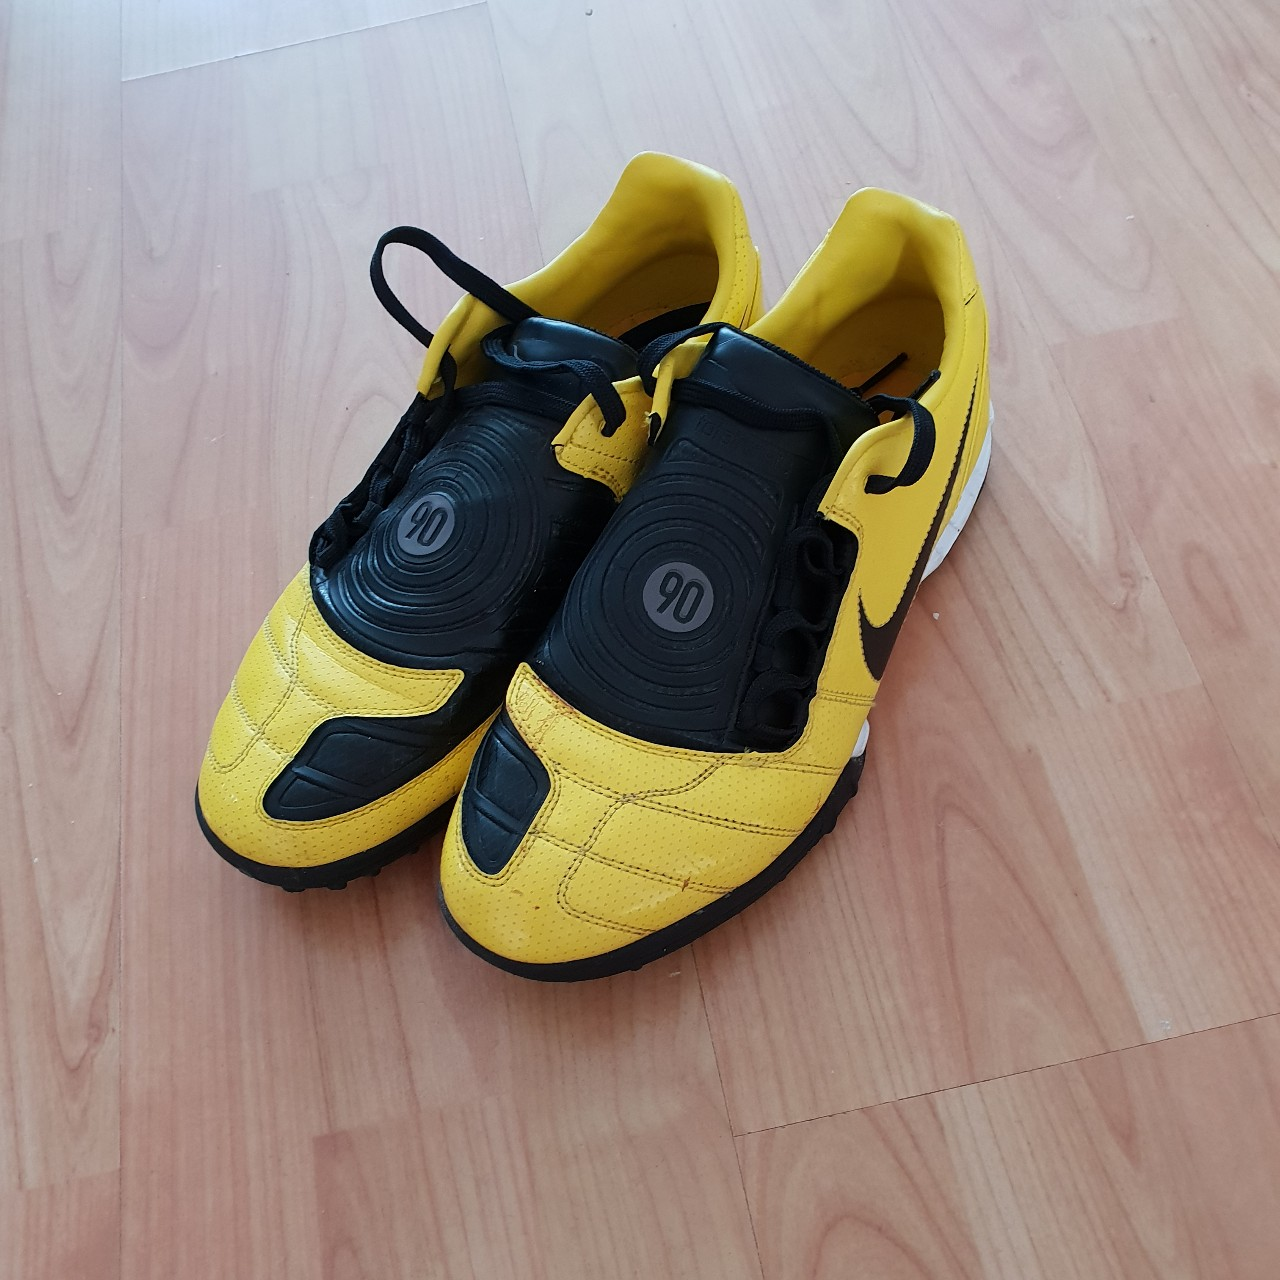 Nike T90 Yellow Astro Trainers 🔥 Size 8